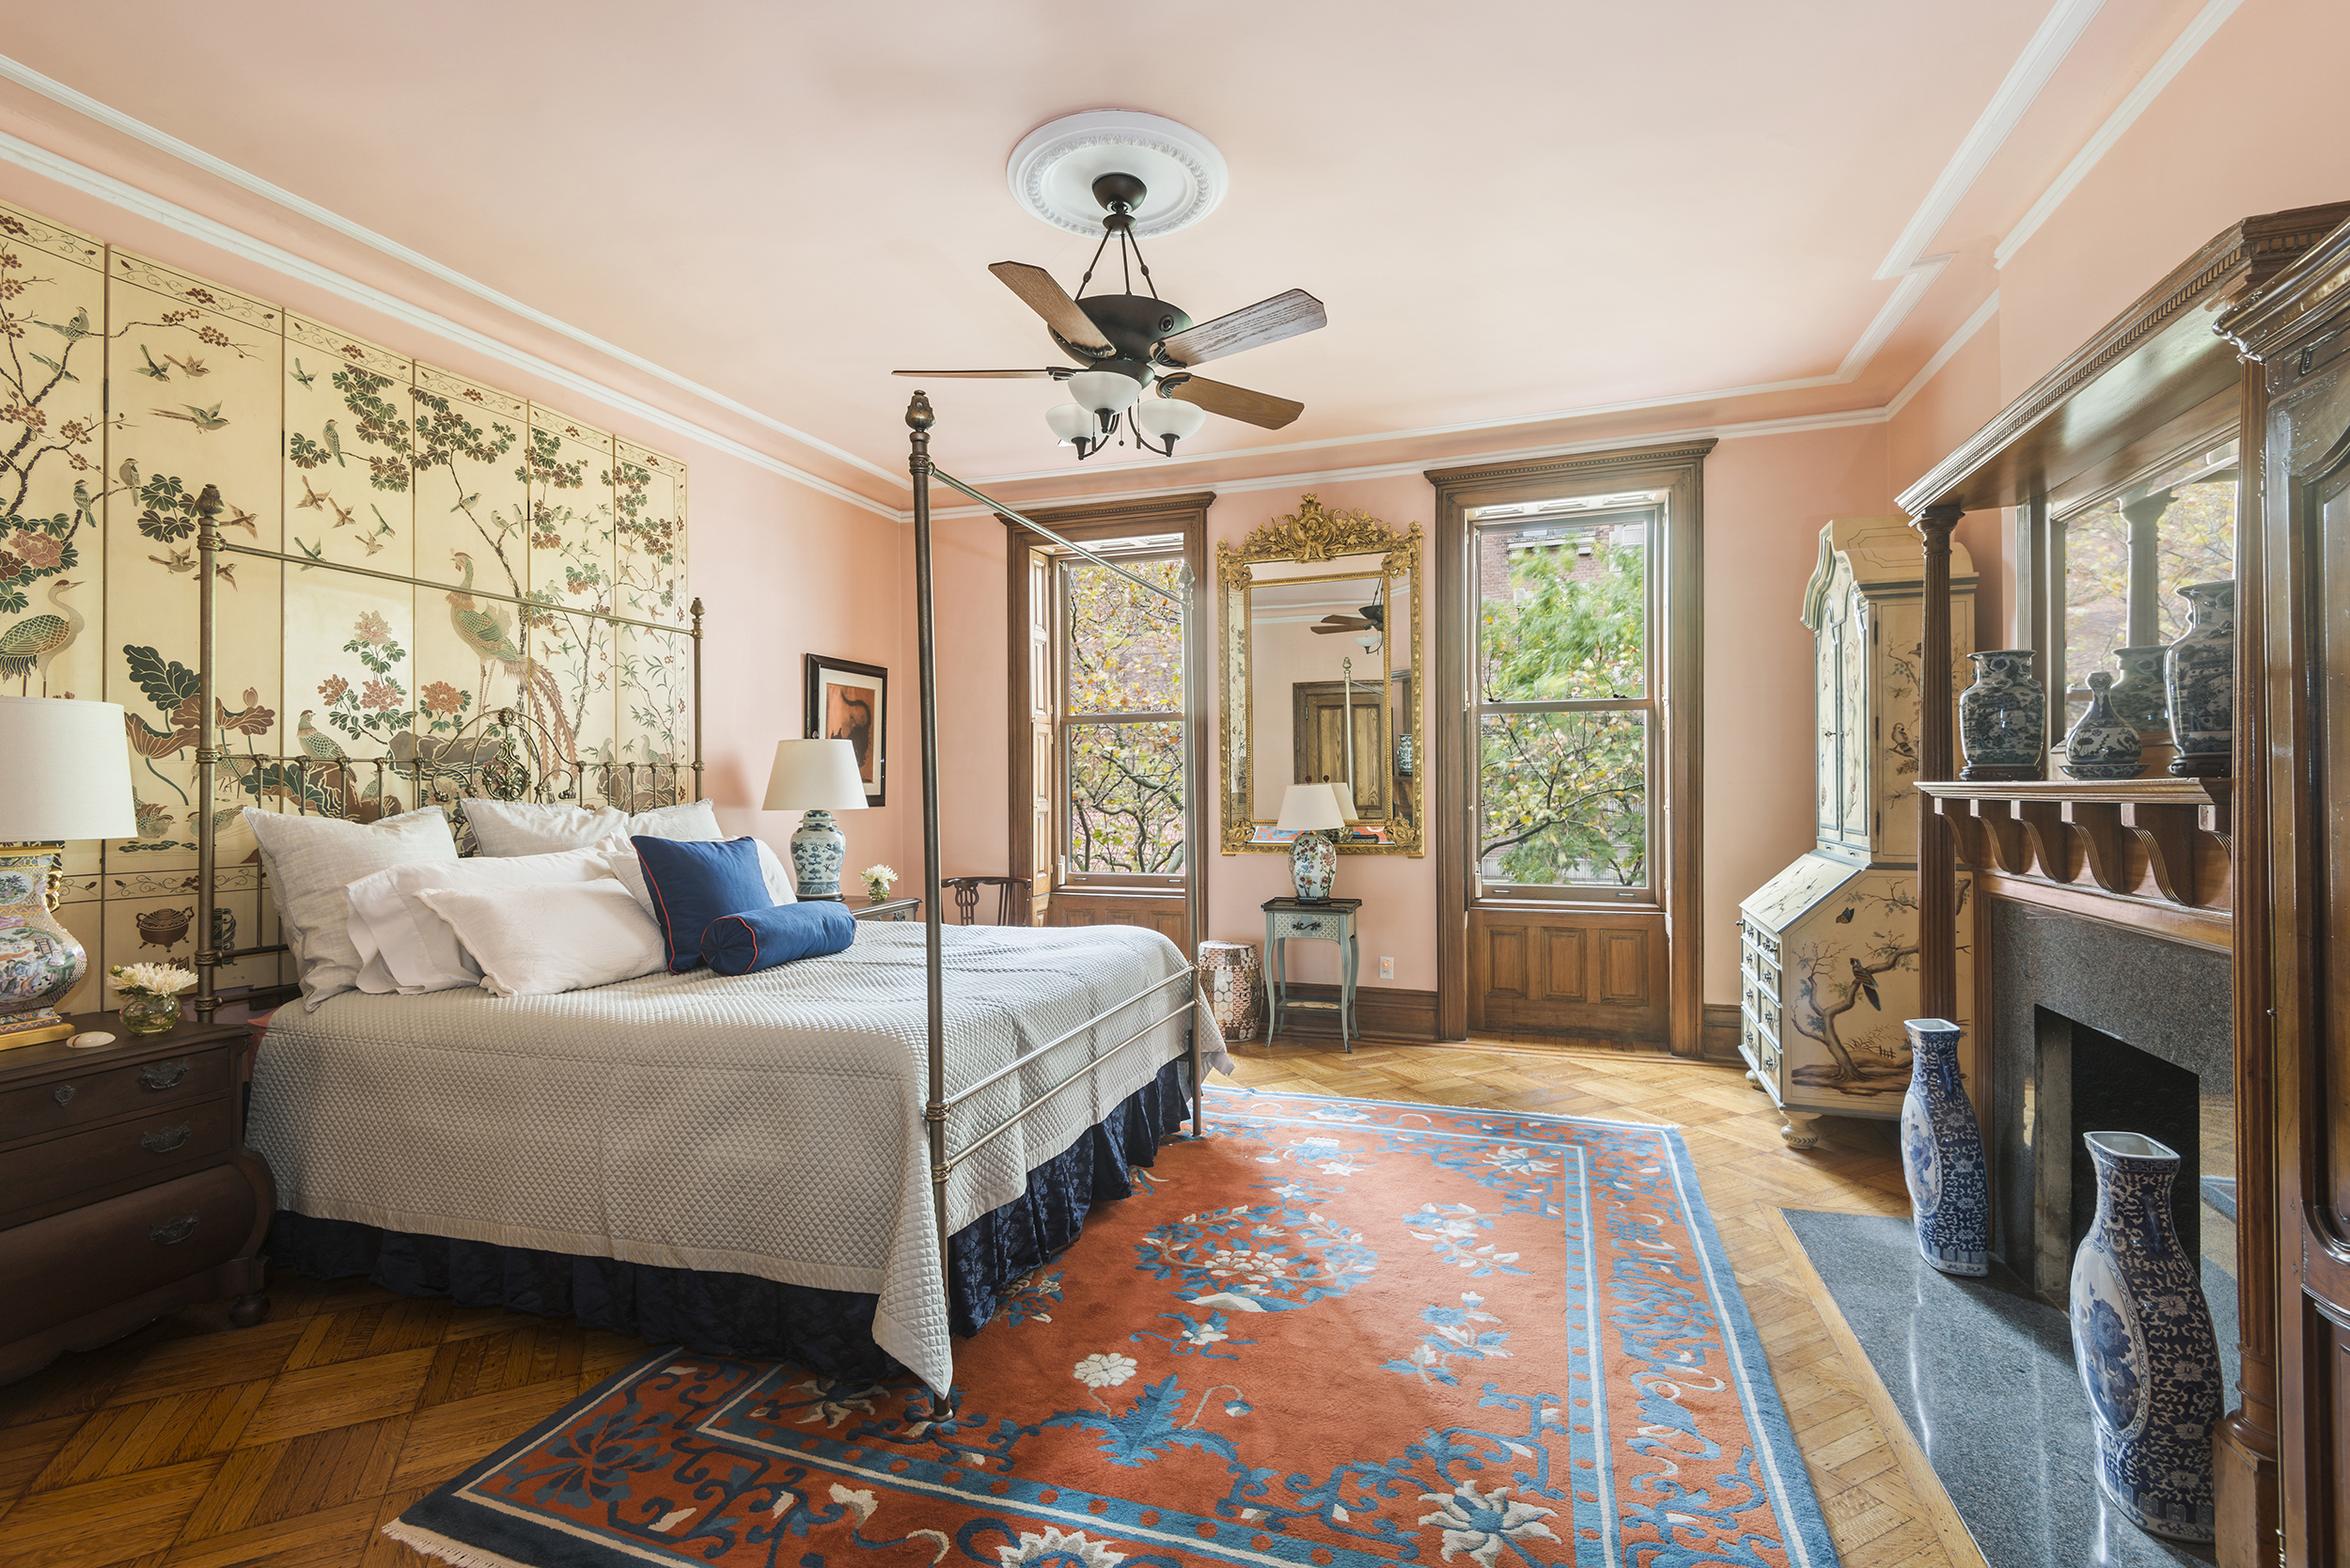 131 West 69th Street: Luxury Upper West Side townhouse master bedroom